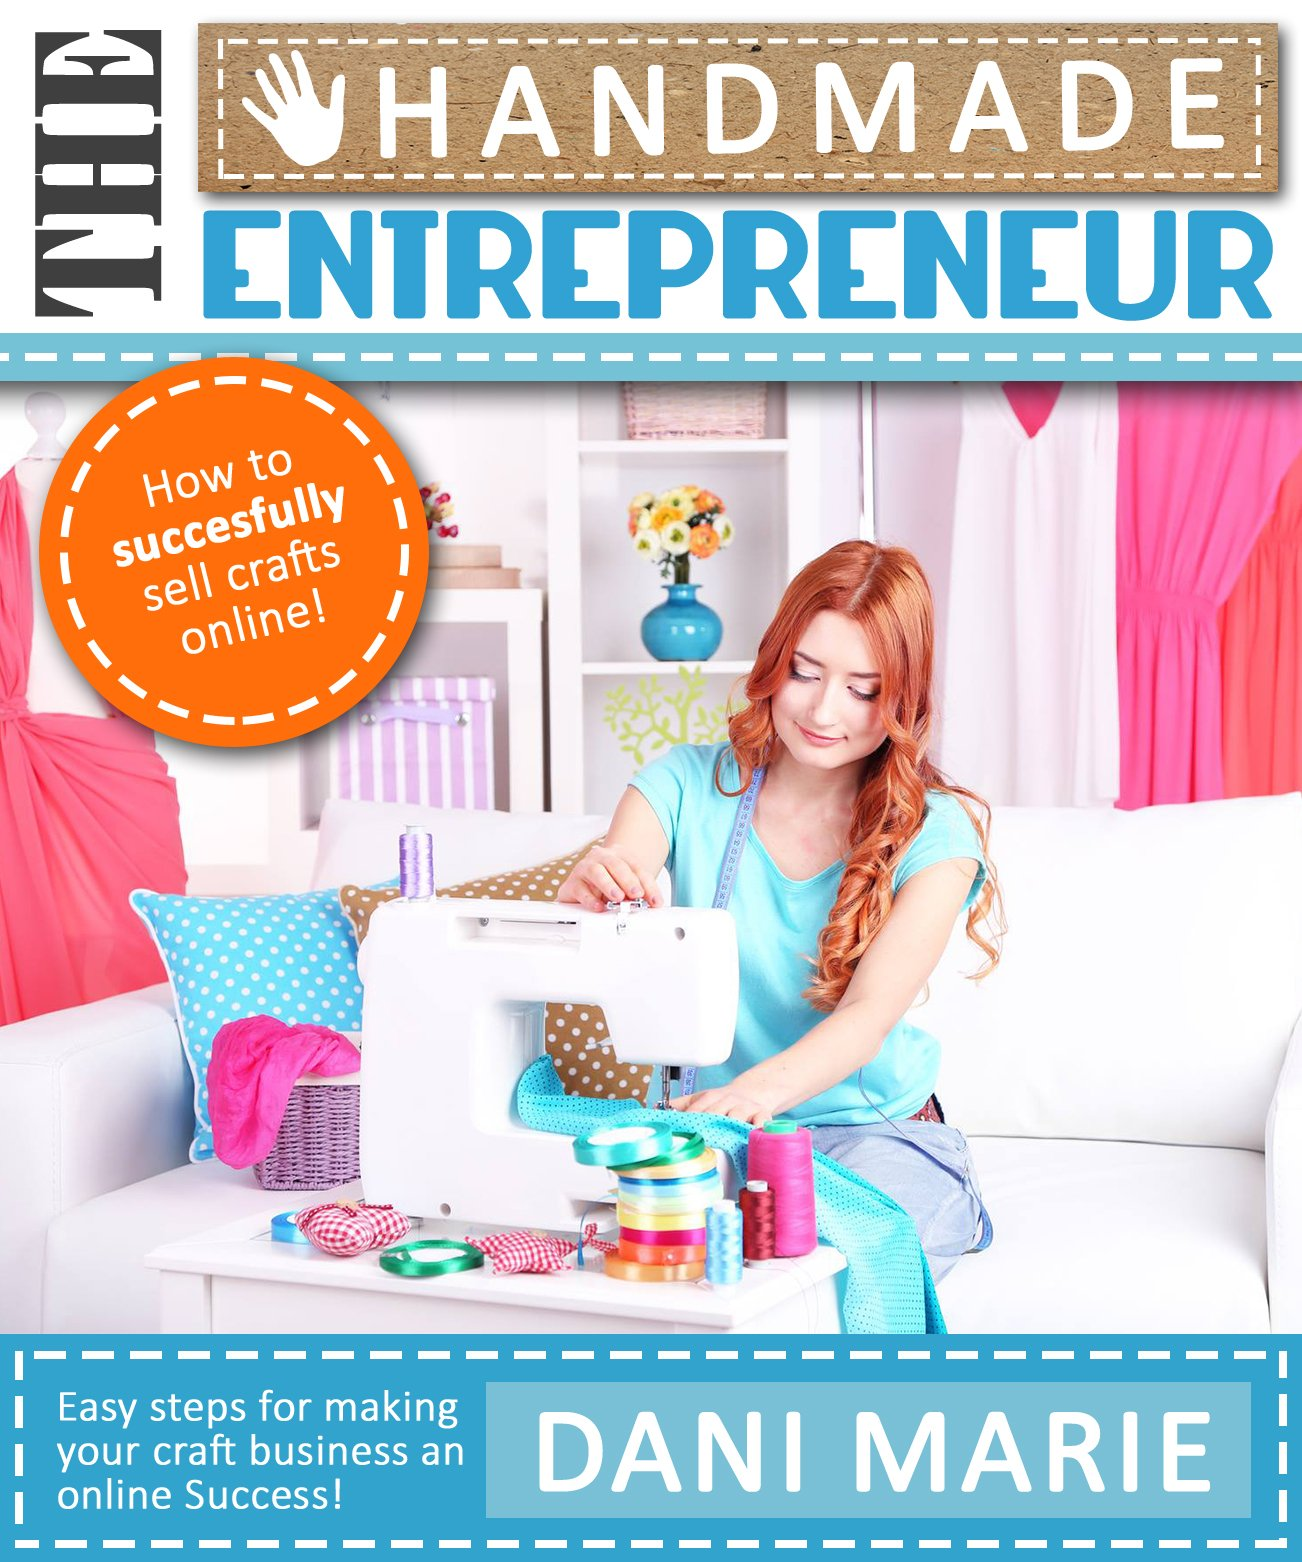 Download The Handmade Entrepreneur—How To Sell On Etsy, Or Anywhere Else: Easy Steps For Building A Real Business Around Your Craft... 